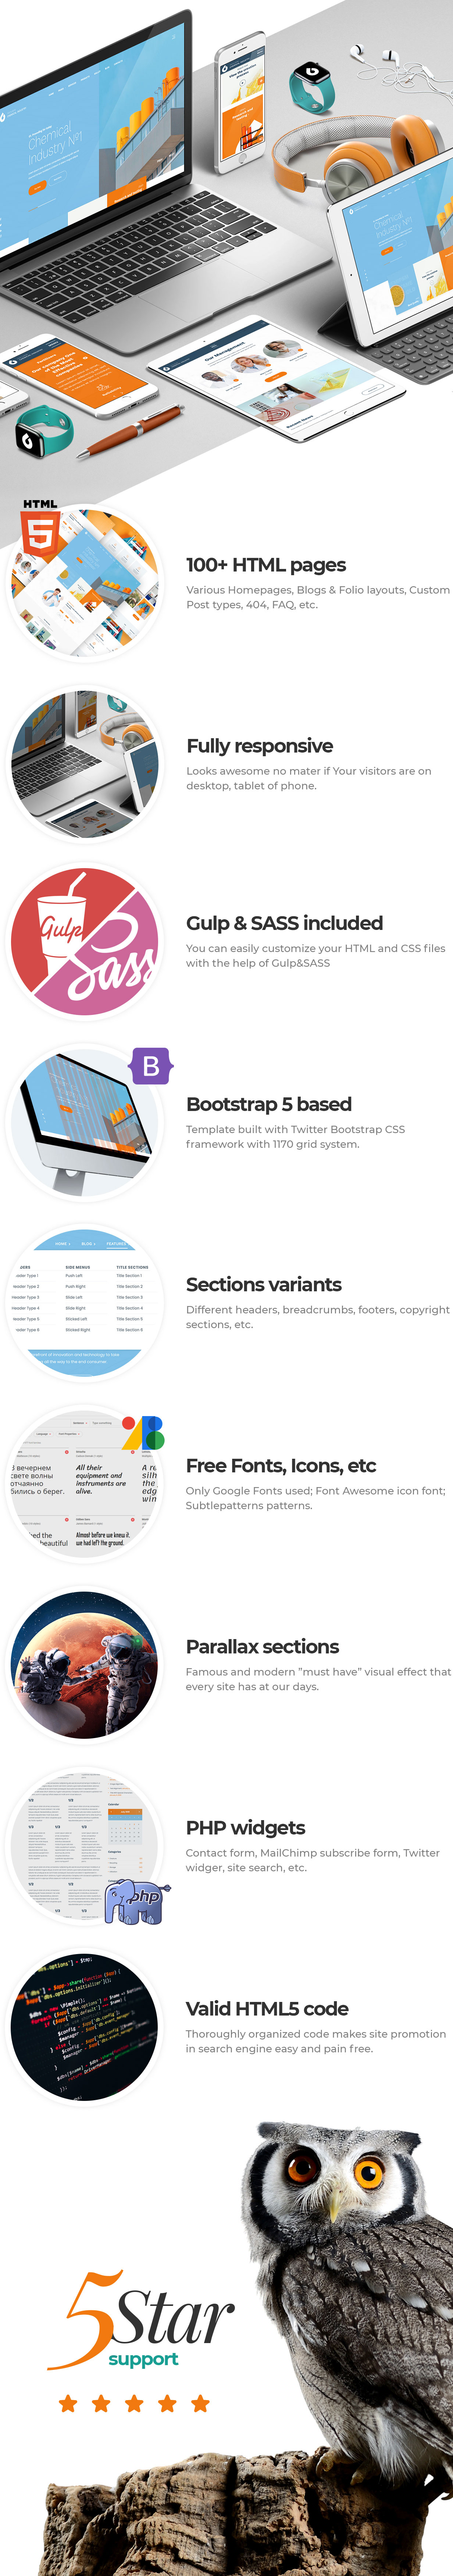 Olyva - Сhemical industry Bootstrap 5 HTML Template features